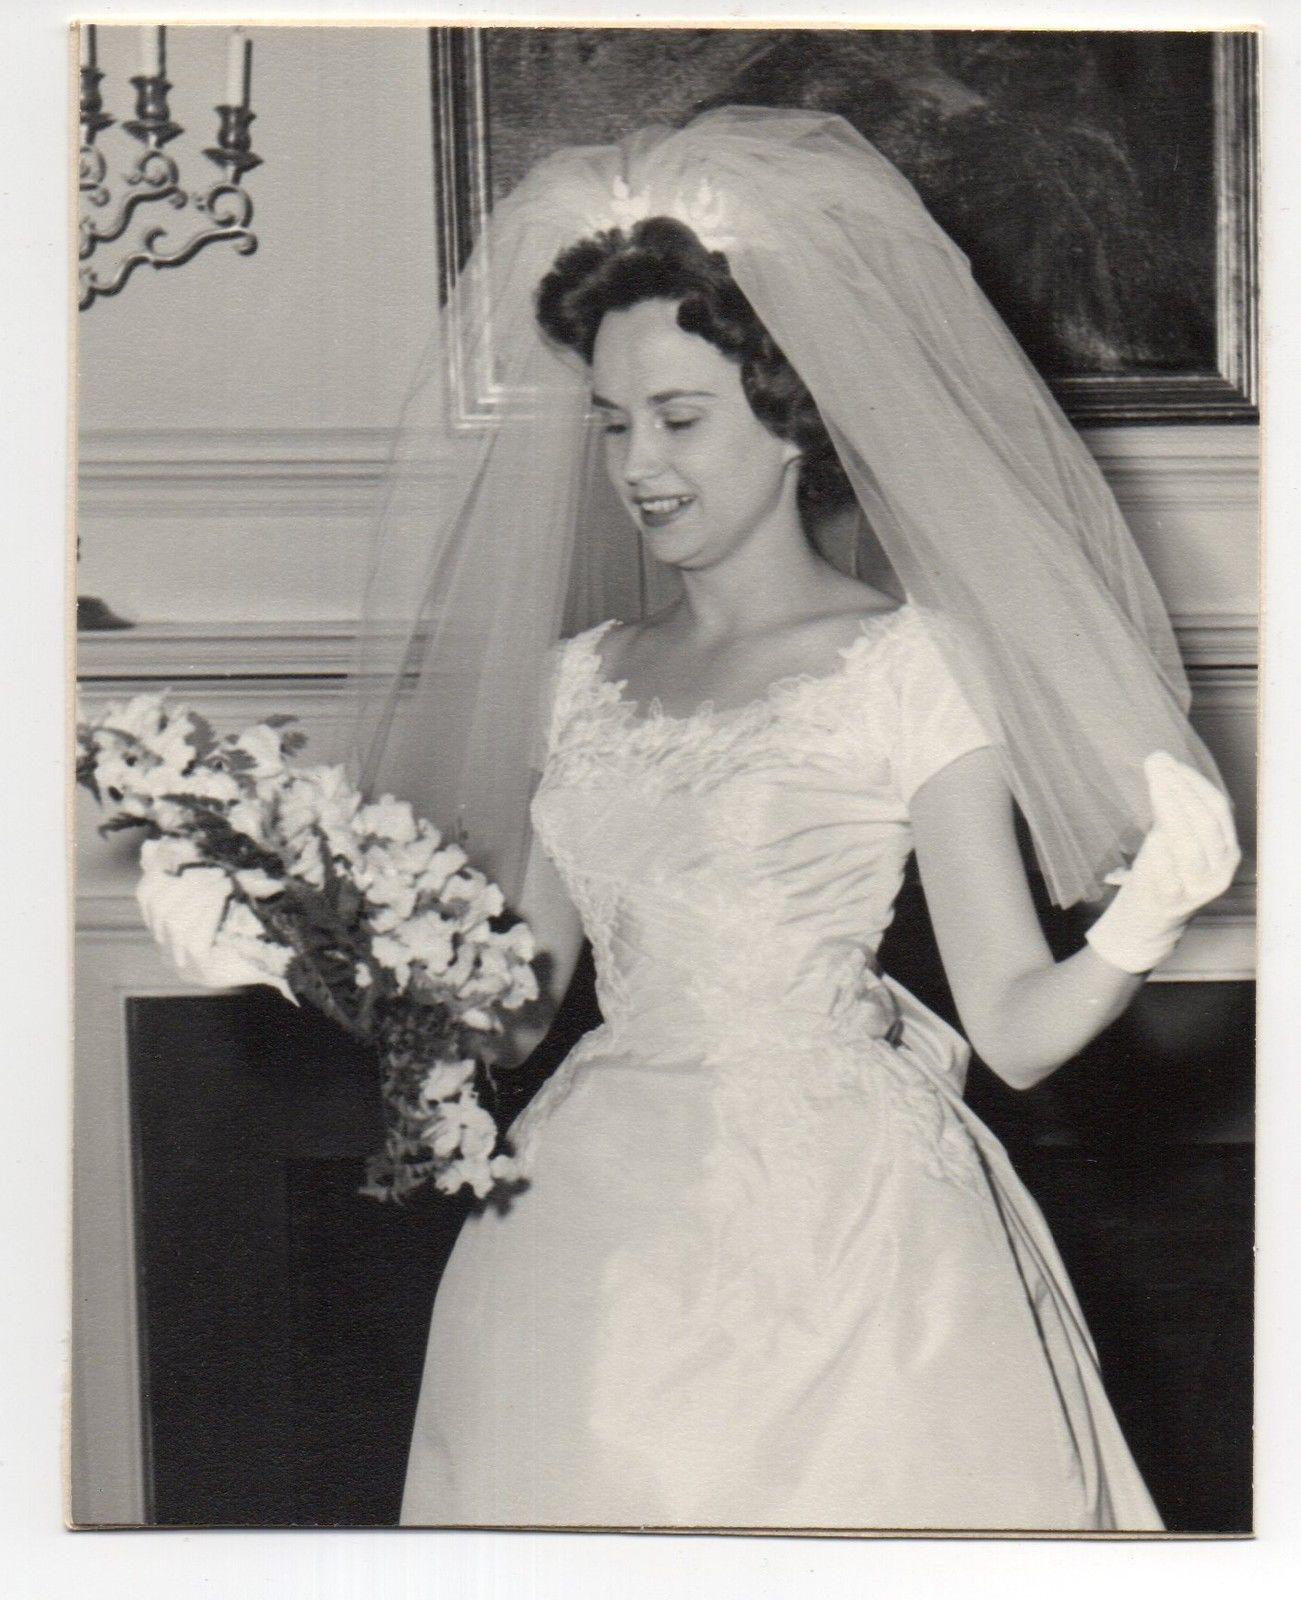 Vintage photo pretty bride wedding portrait 1960 39 s nov Wedding dress 1960